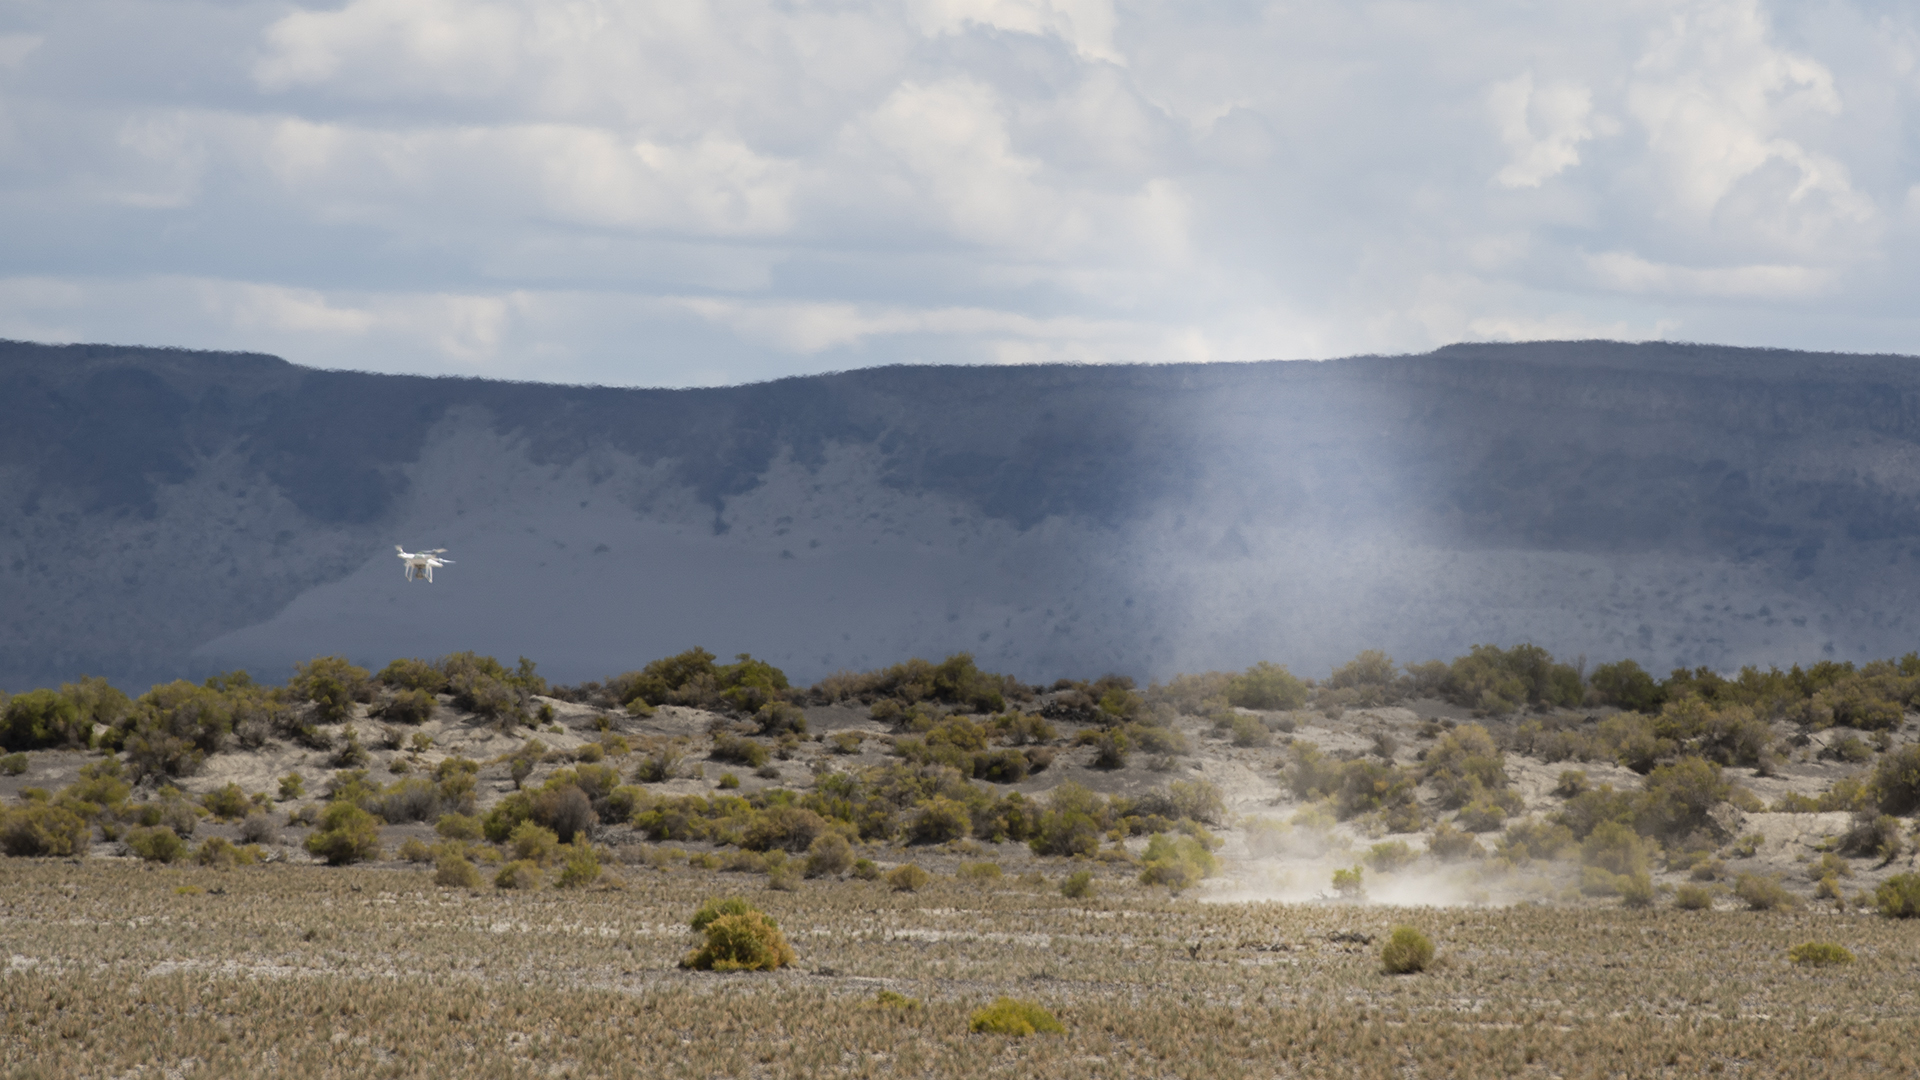 Dust devil traveling, drone beside it